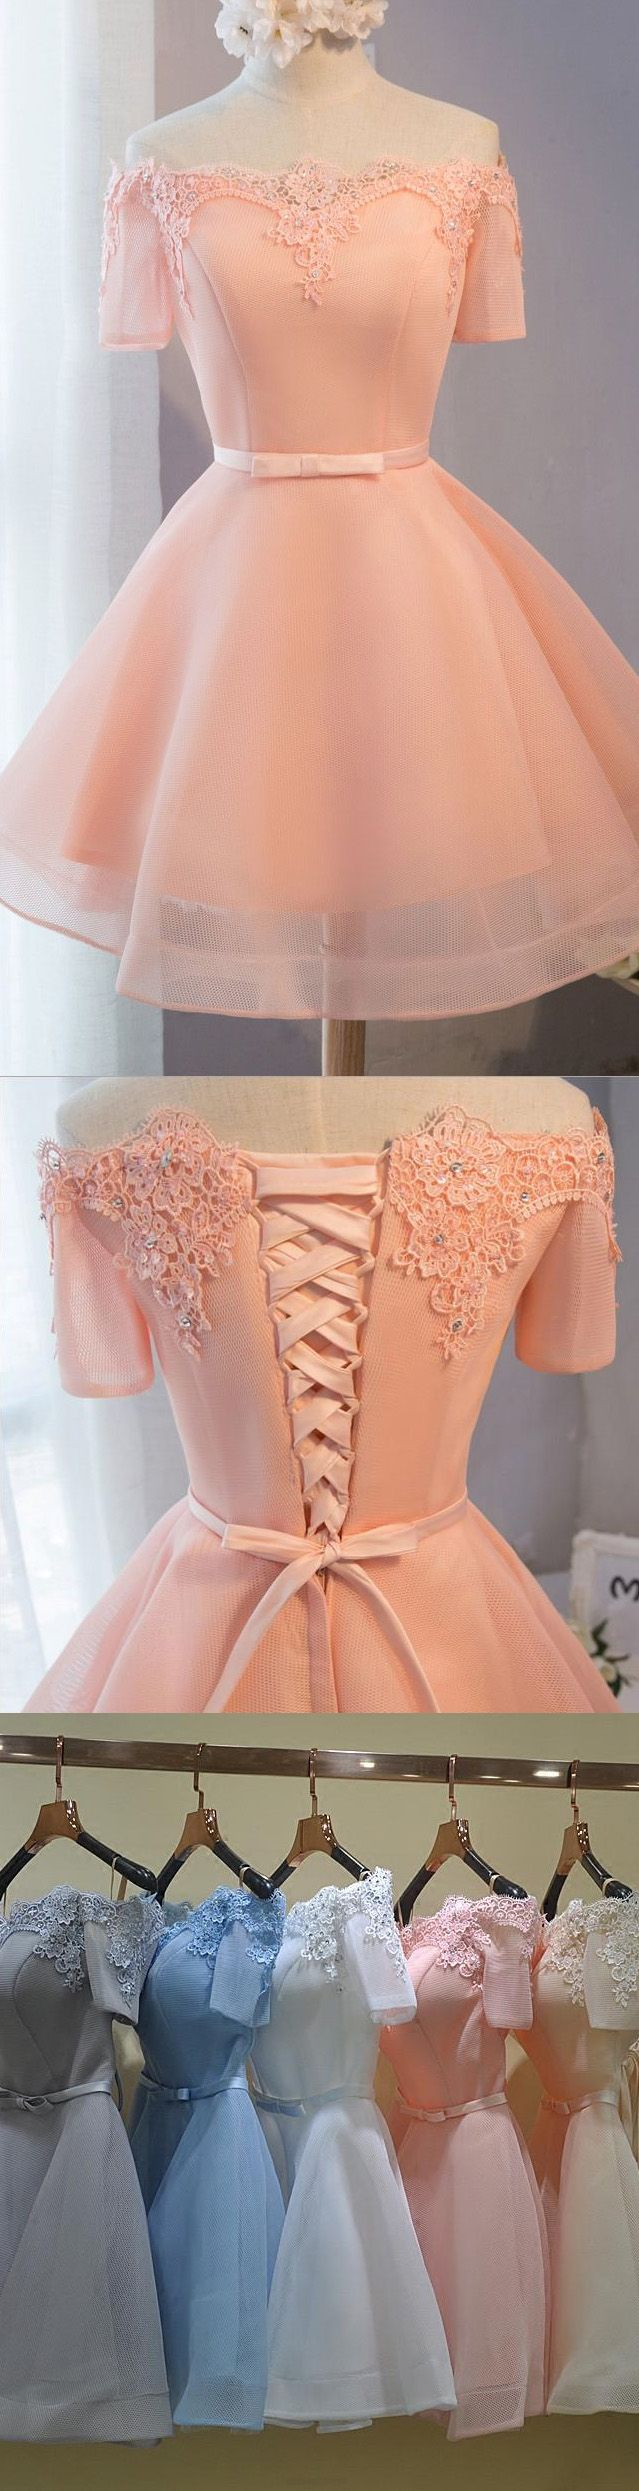 Short Prom Dresses, Pink Prom Dresses, Sexy Prom dresses, Prom Dresses Short, Short Pink Prom Dresses, Short Homecoming Dresses, Homecoming Dresses Short, Pink Homecoming Dresses, Short Sleeve Prom Dresses, Sexy Party Dresses, Bandage Party Dresses, Mini Homecoming Dresses